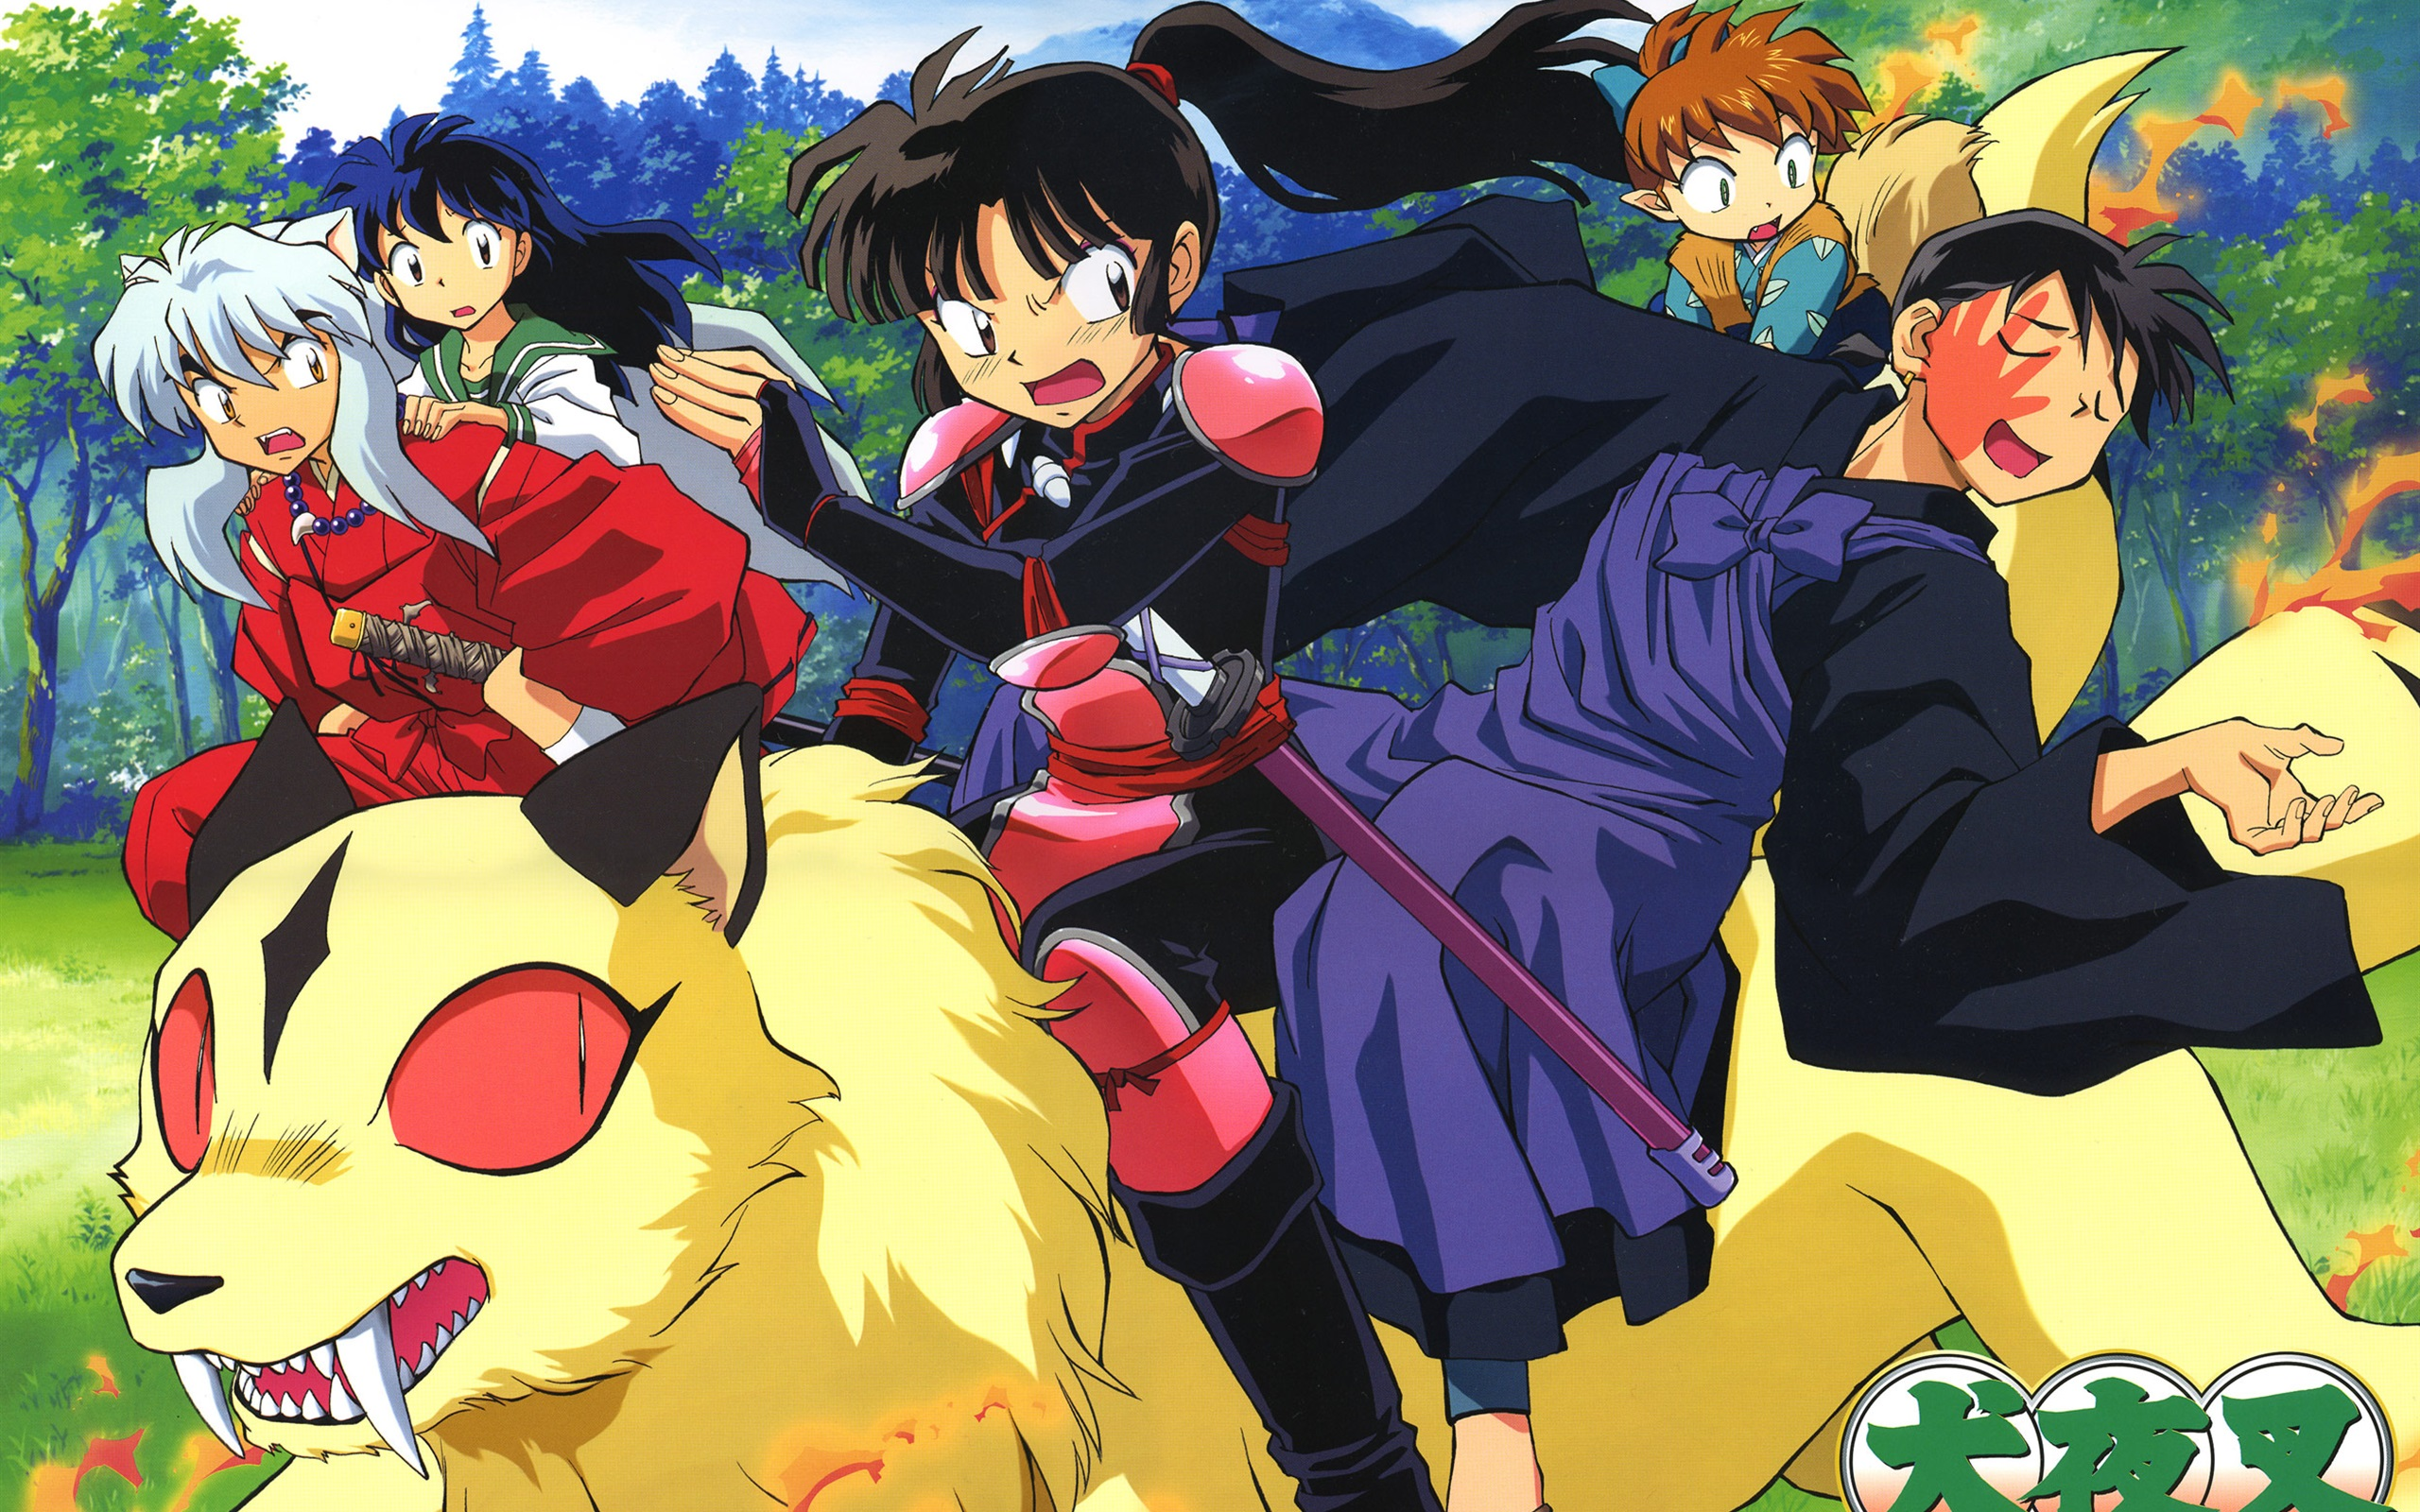 wallpaper inuyasha, japanese anime 2560x1600 hd picture, image